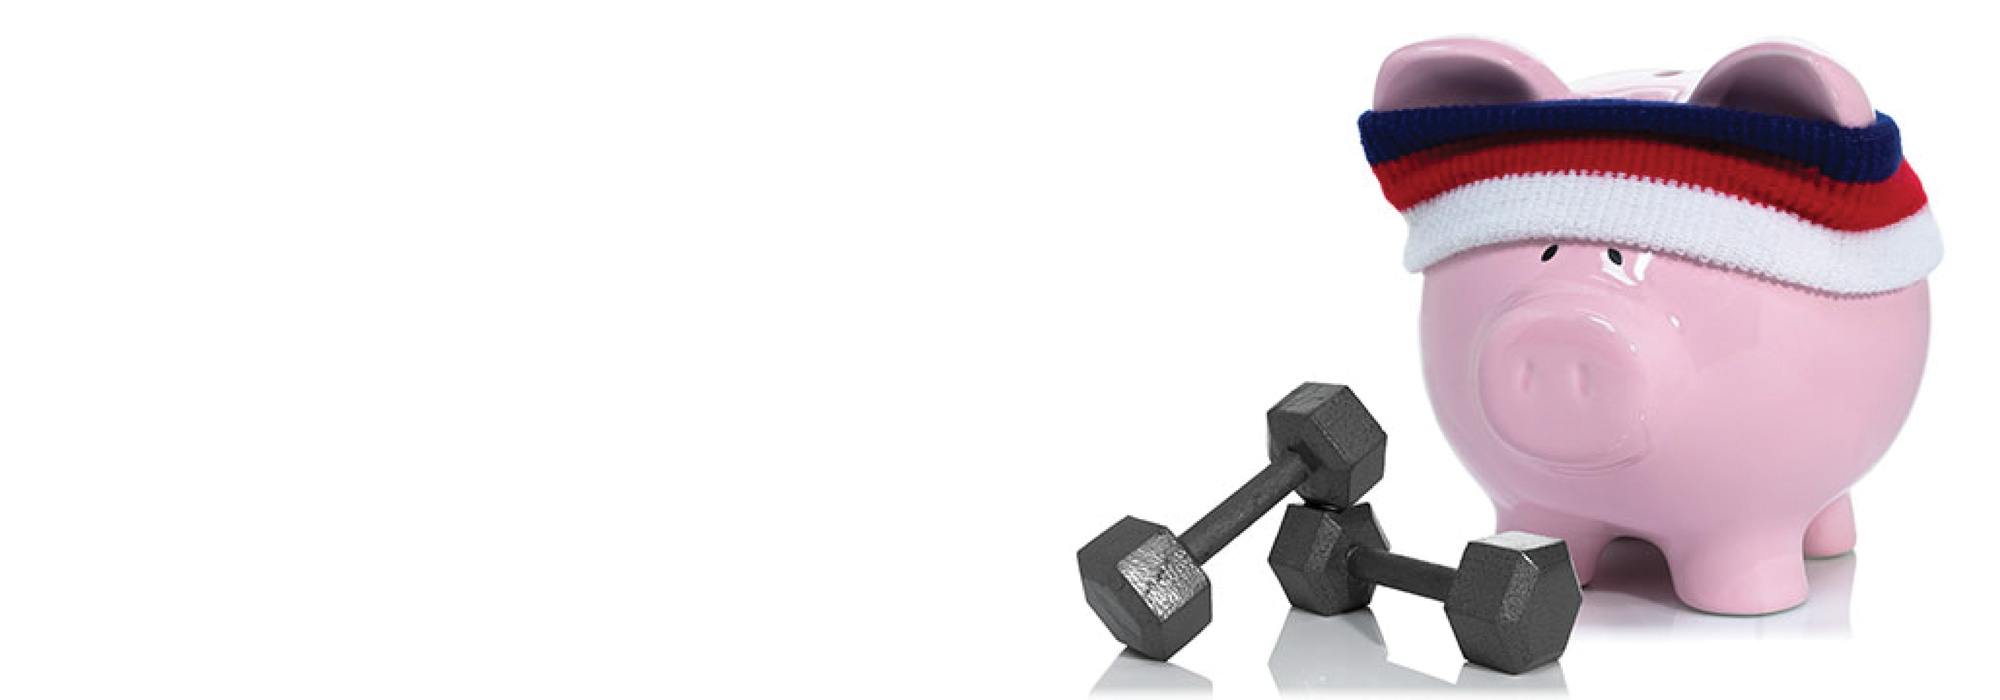 piggy-bank-fitness-2000x700